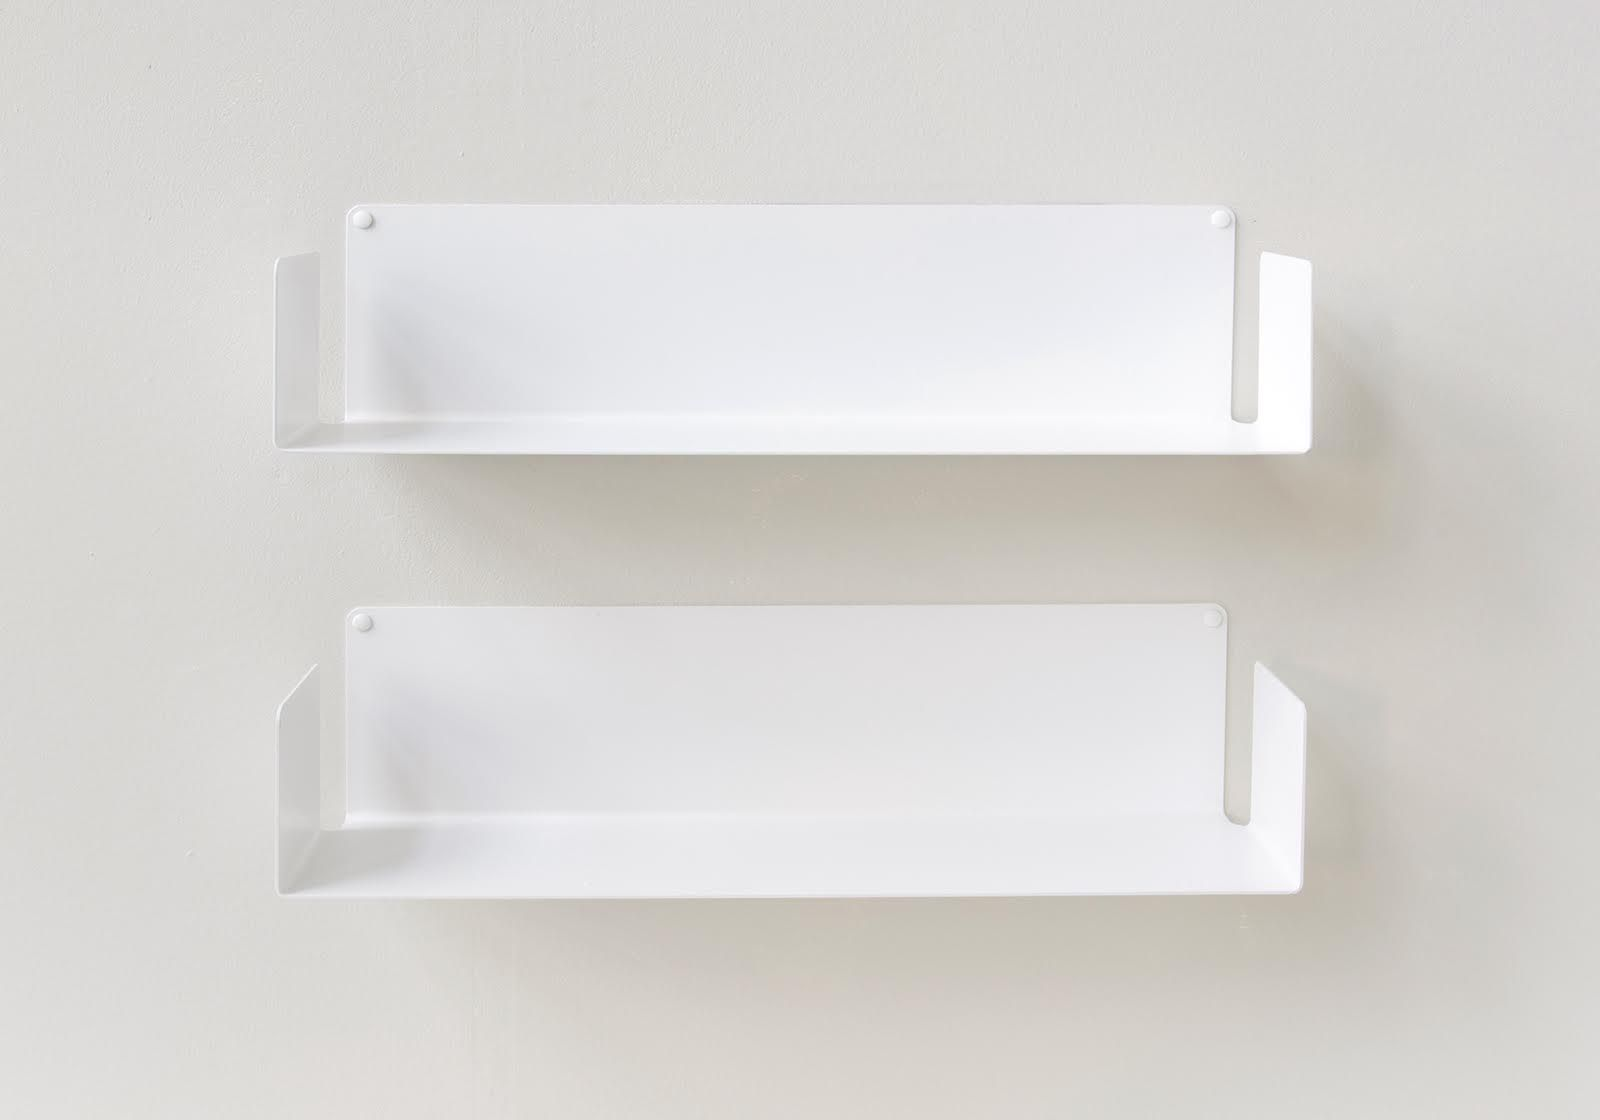 floating shelves set shelf deep build weight bearing work shelving moving industrial wall small cube unit self stick brackets where can find coat tree metal cleats thick